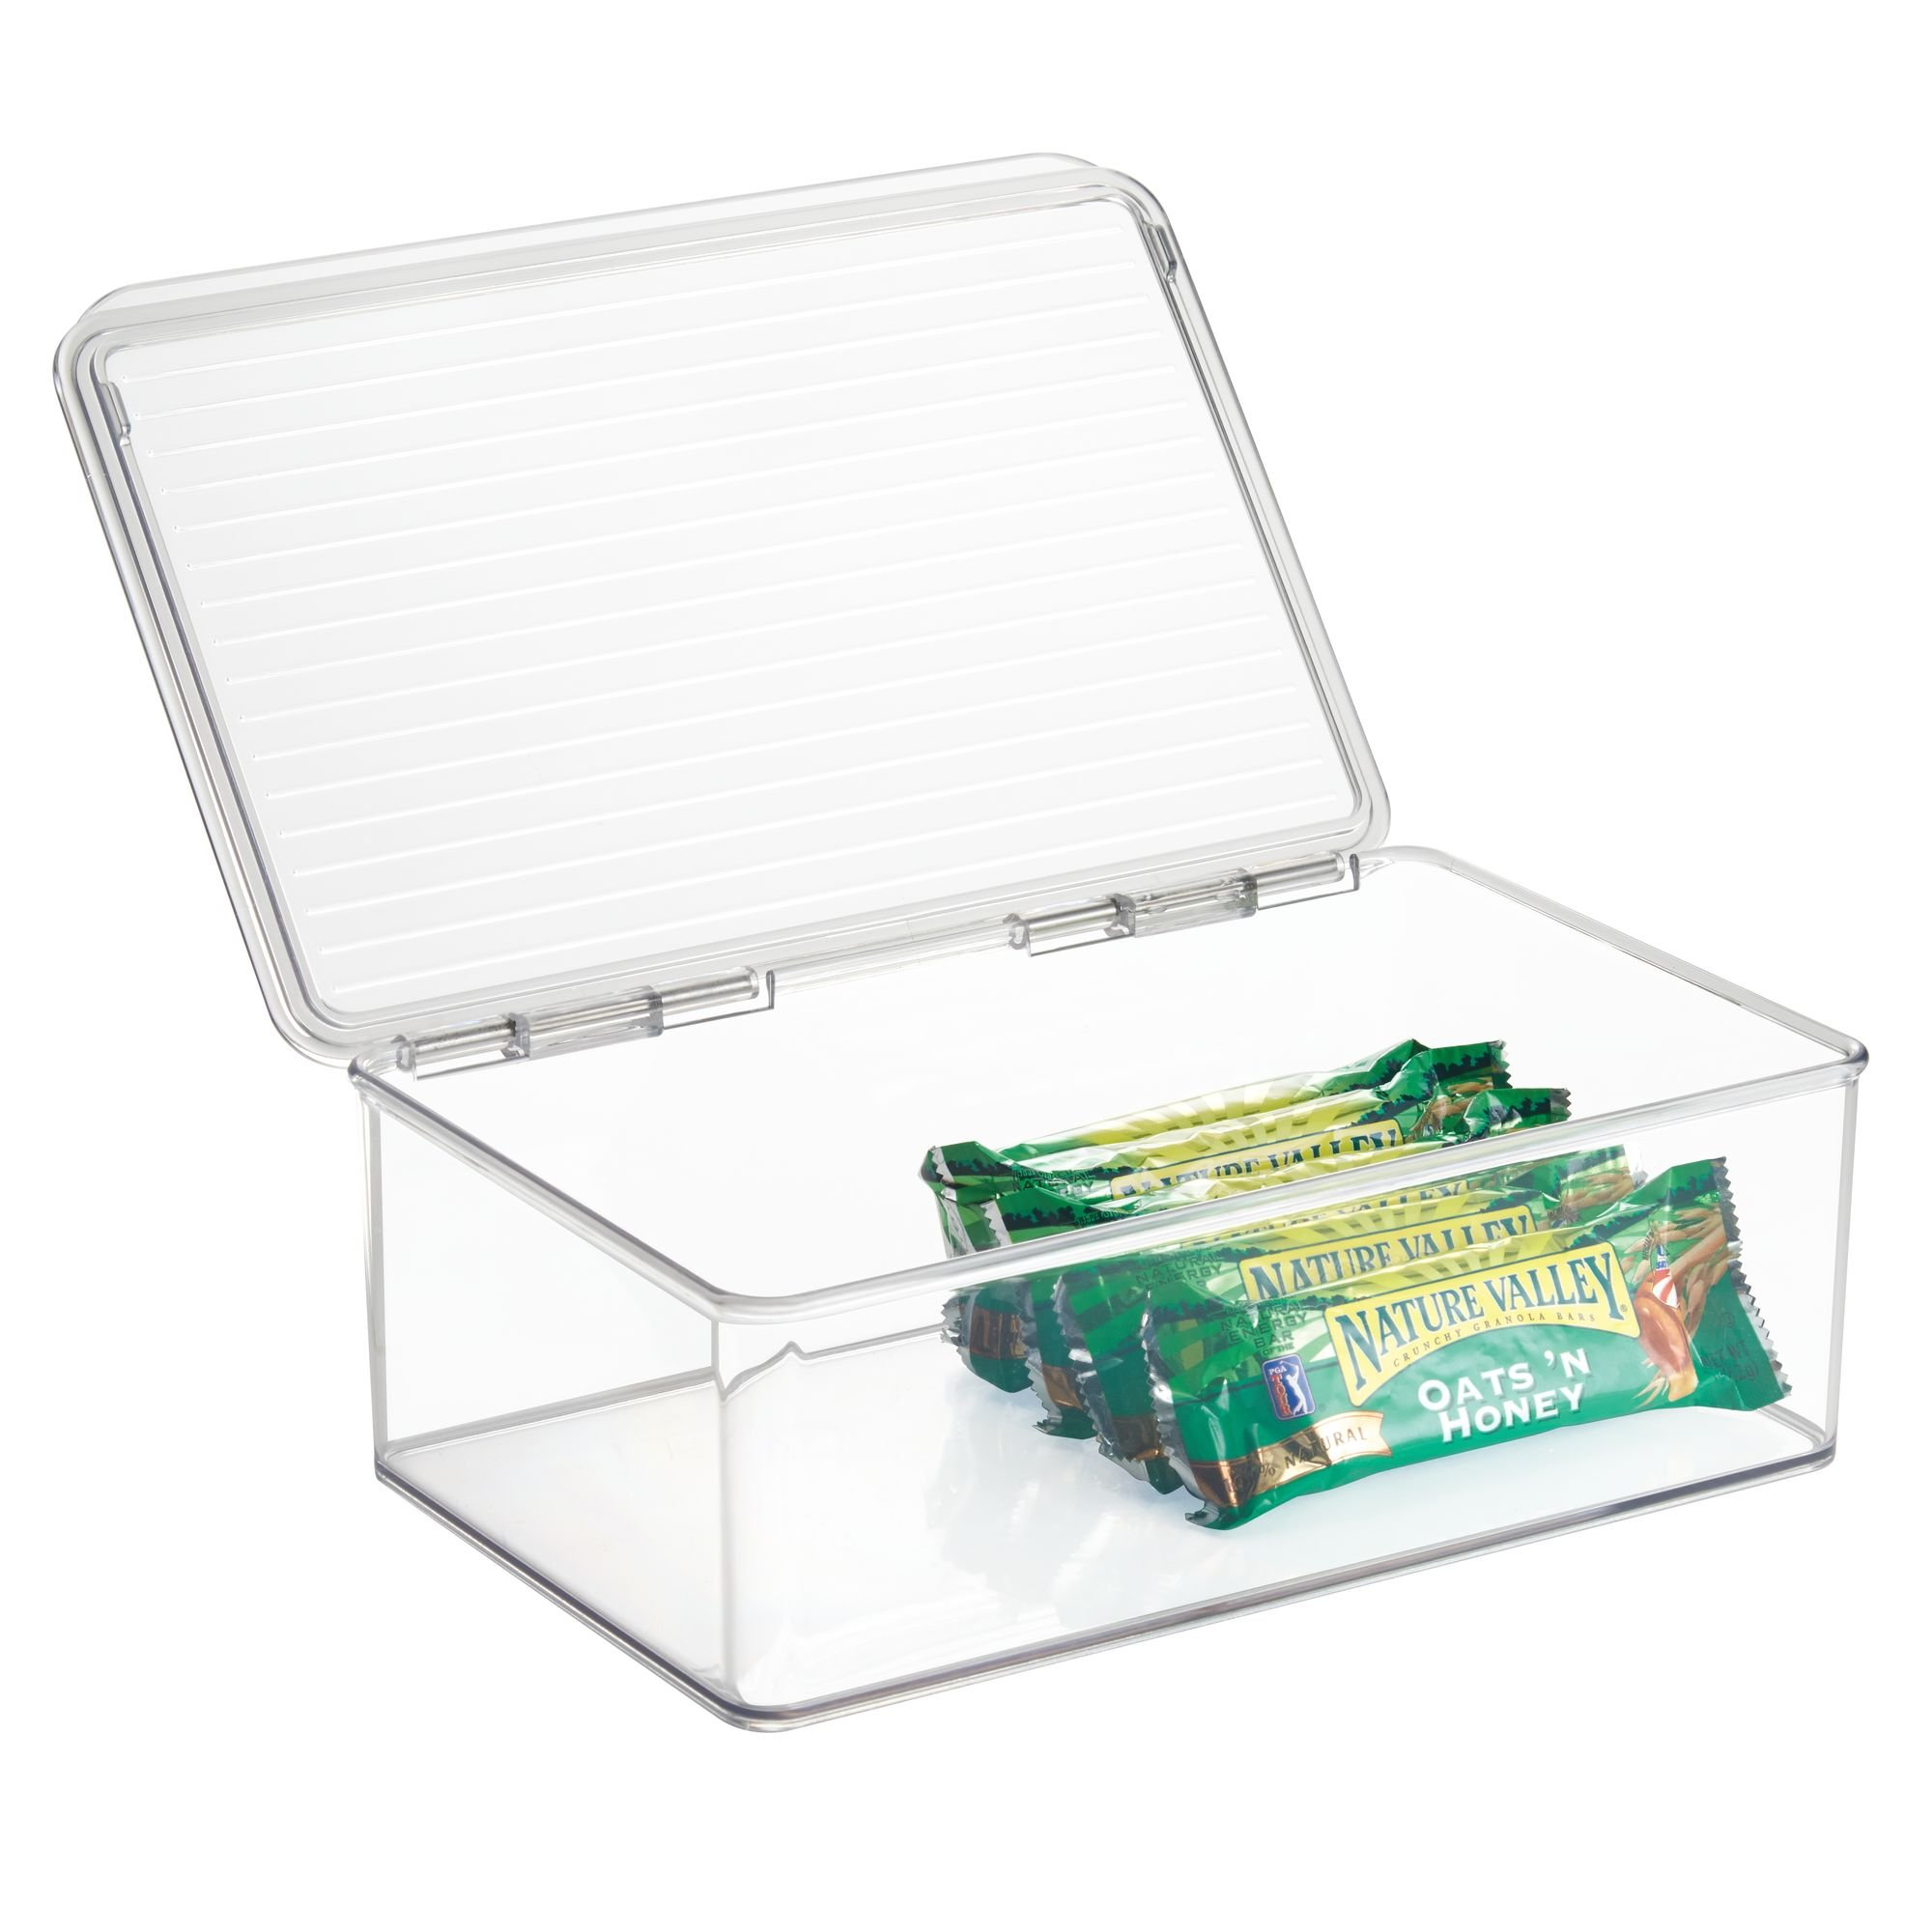 "iDesign Kitchen Binz BPA-Free Plastic Stackable Organizer Box with Lid - 7.25"" x 10.75"" x 3.75"", Clear"